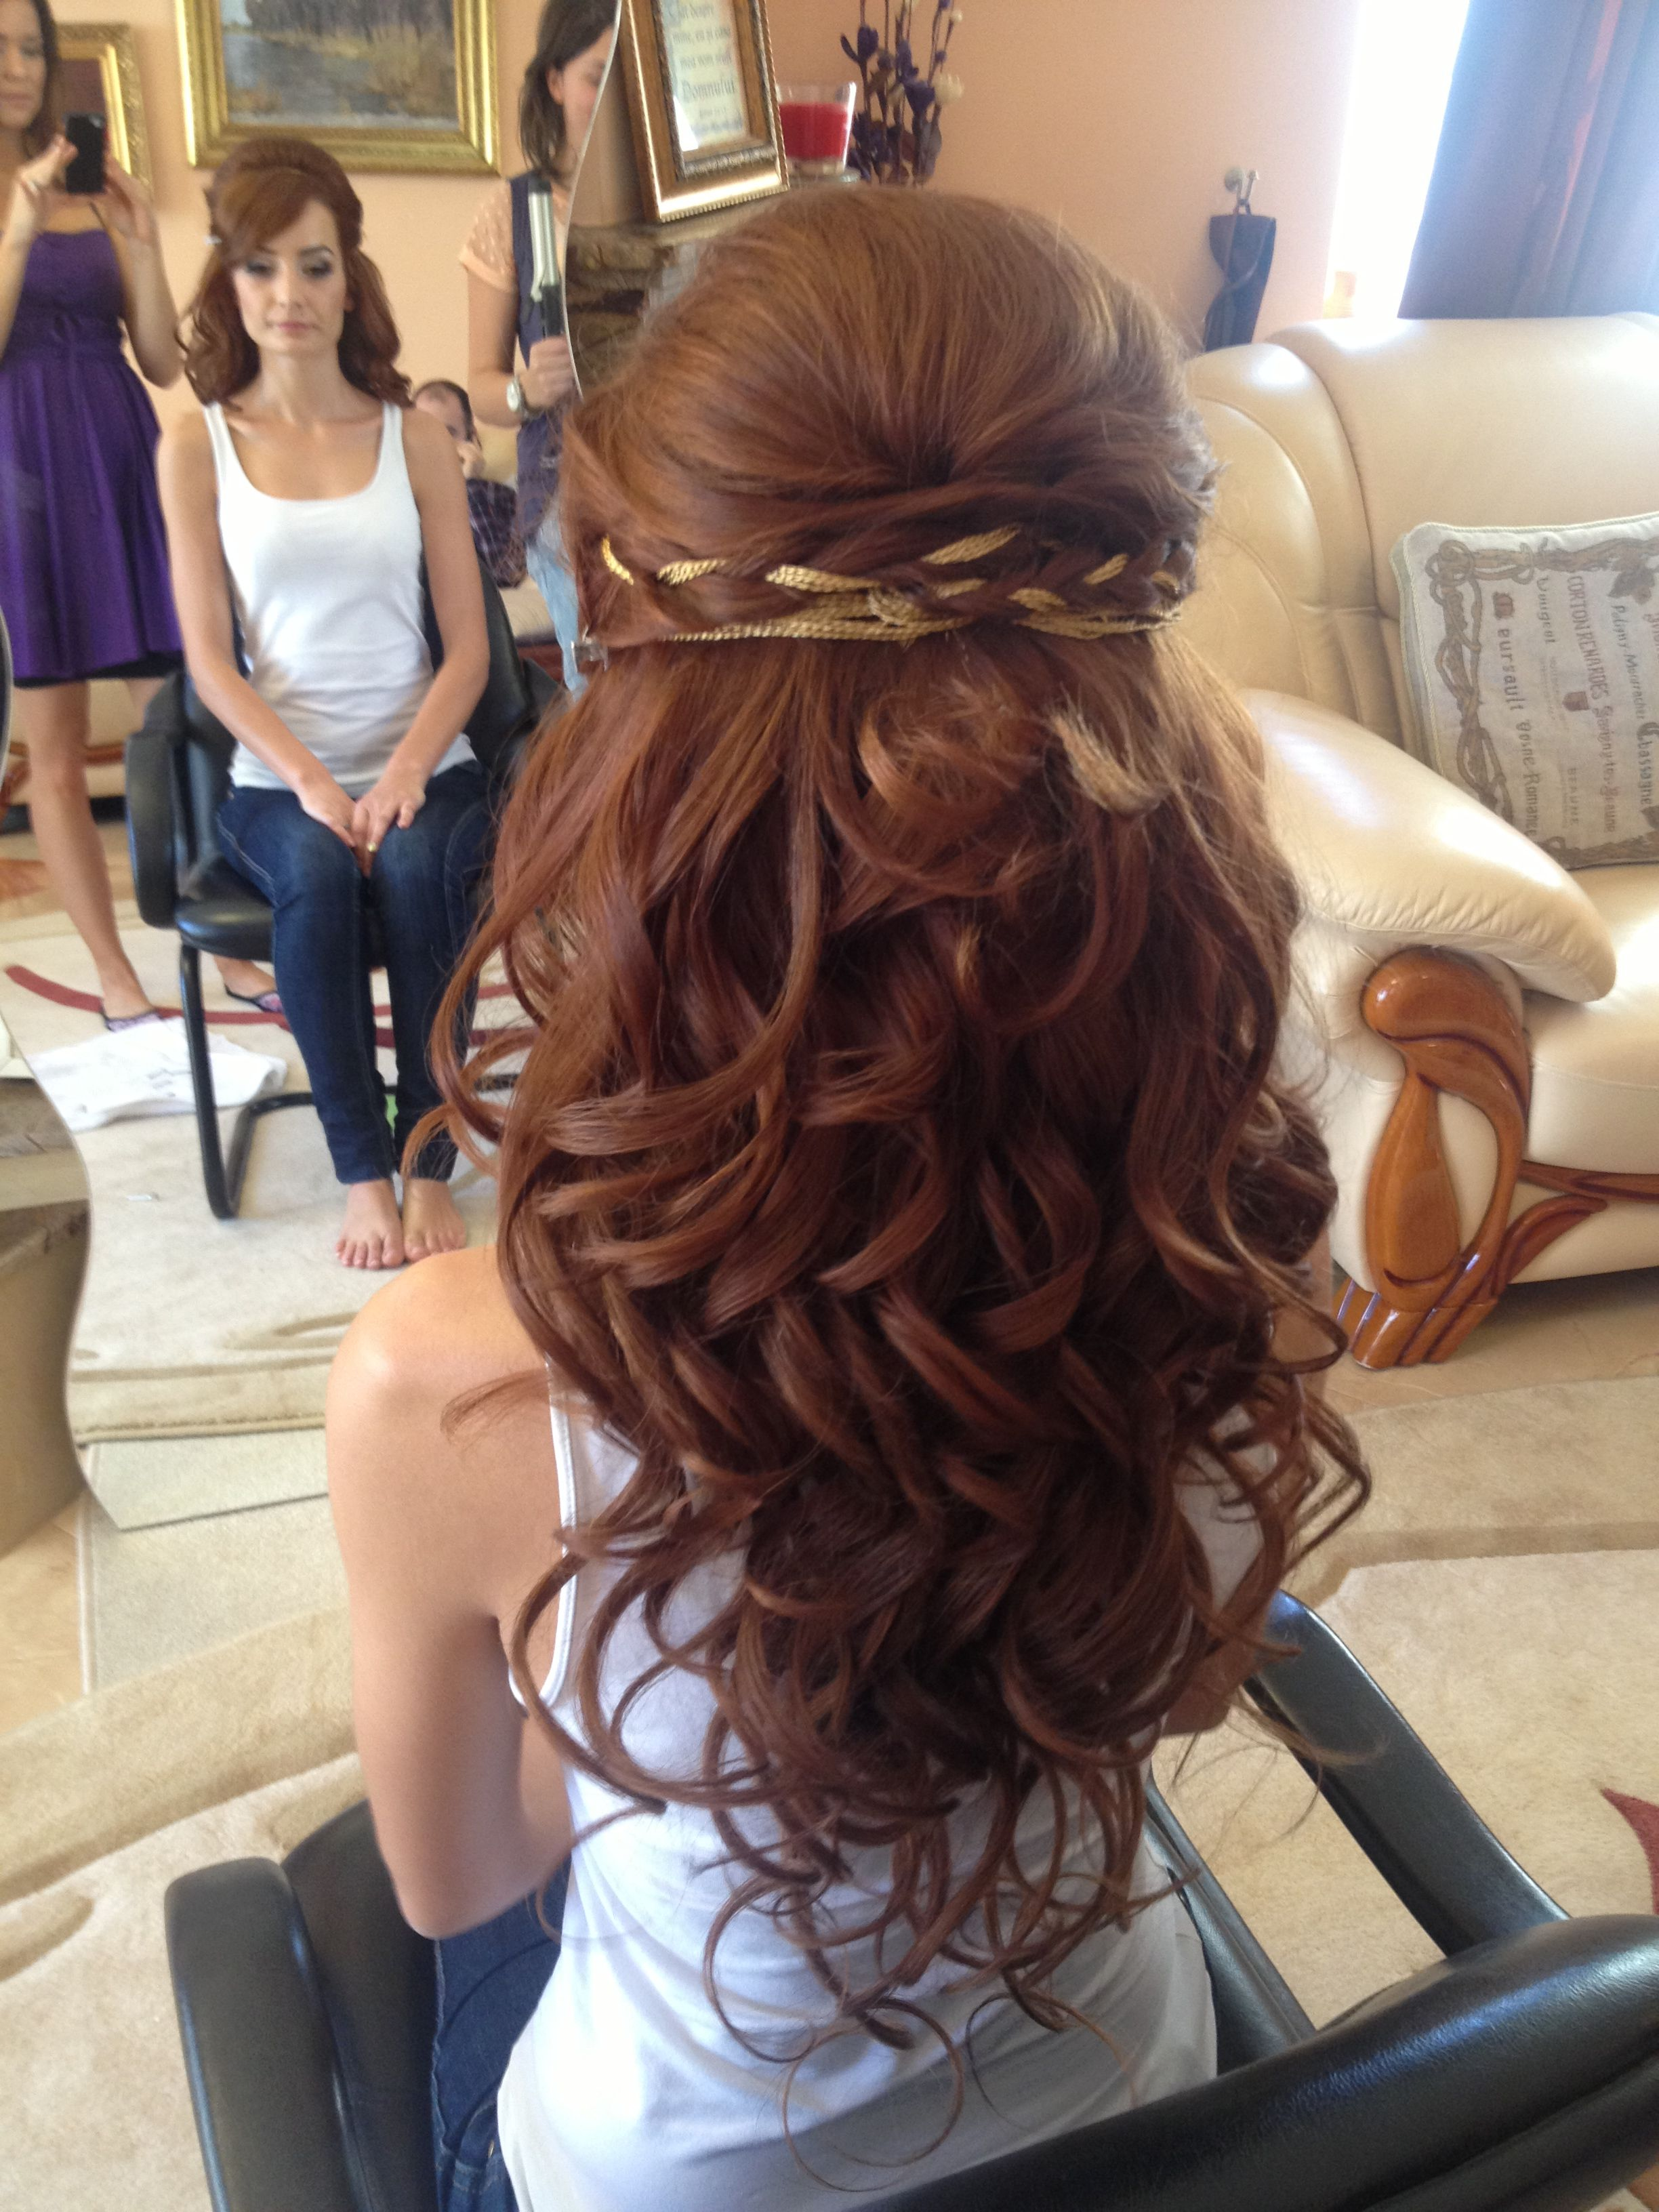 This braided wavy style is be ing more and more popular with